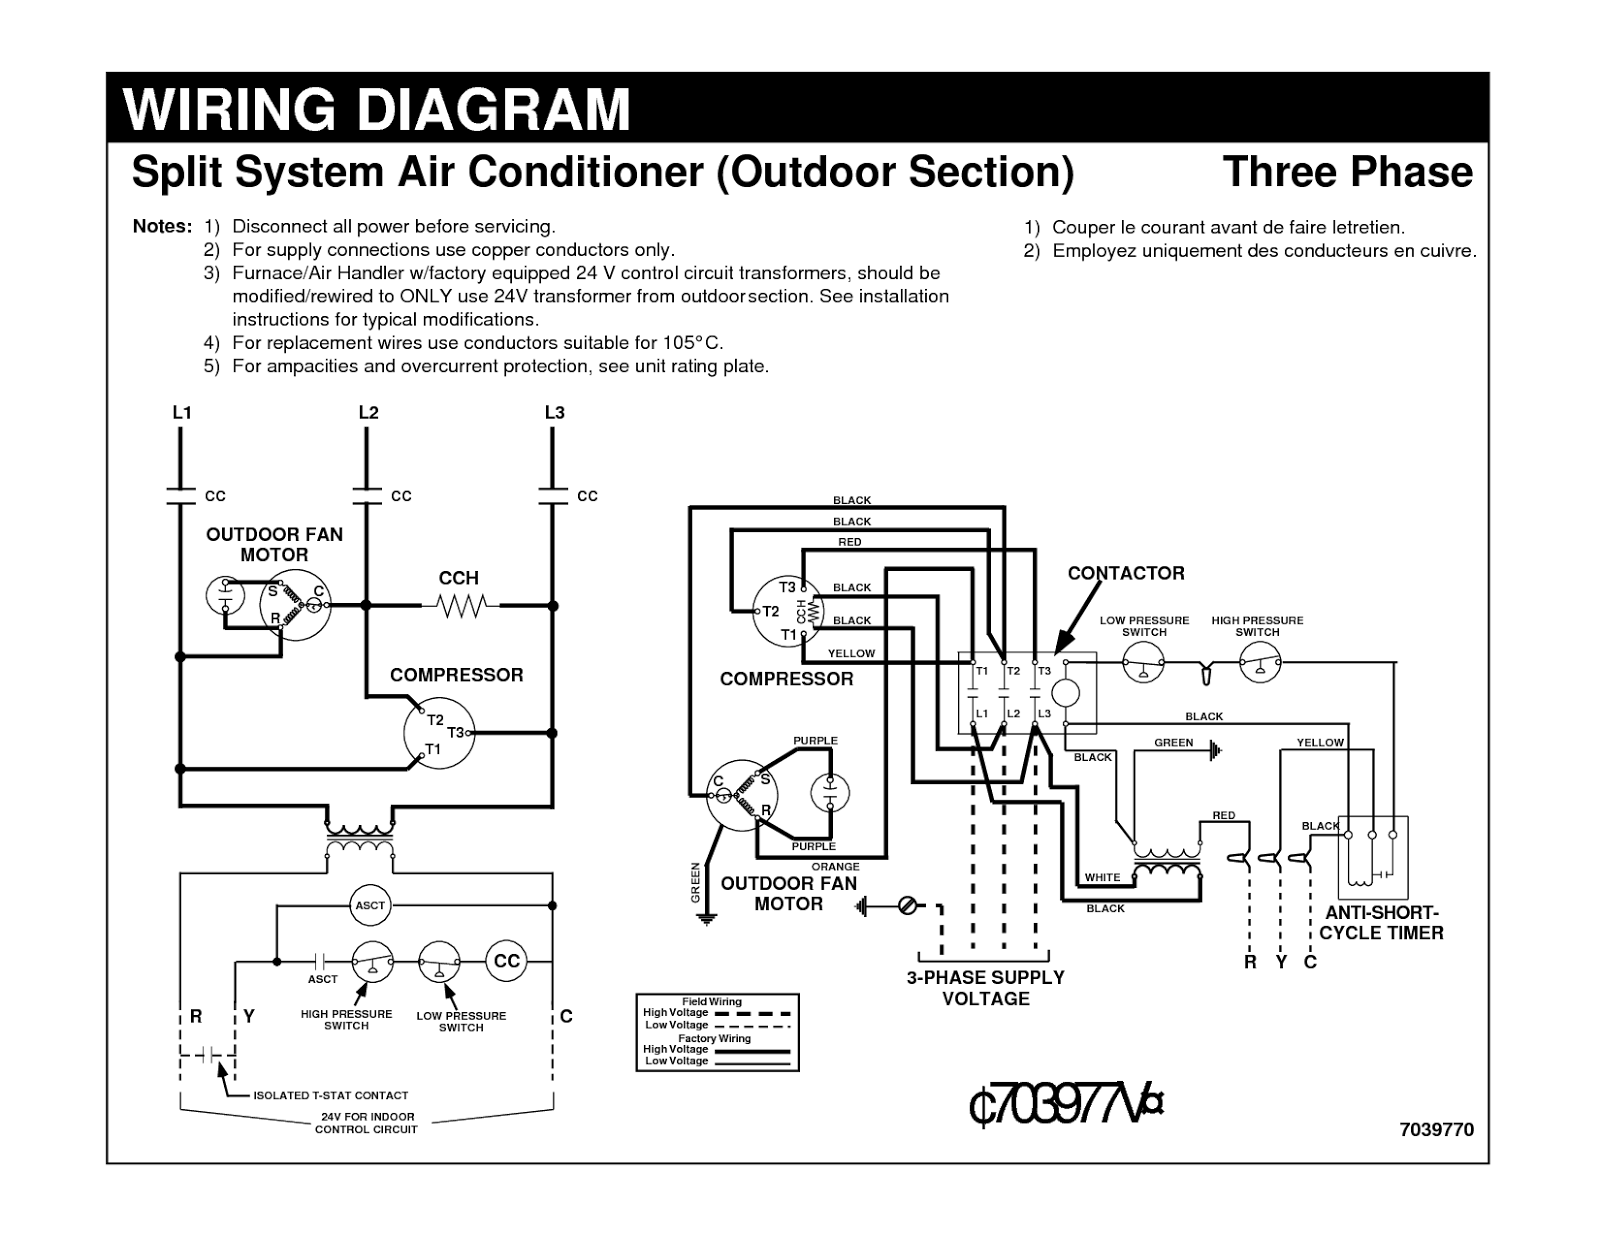 wiring+diagram+in+the+user+manual hvac wiring diagram hvac wiring diagram 91 pontiac firebird york ac wiring diagram at n-0.co